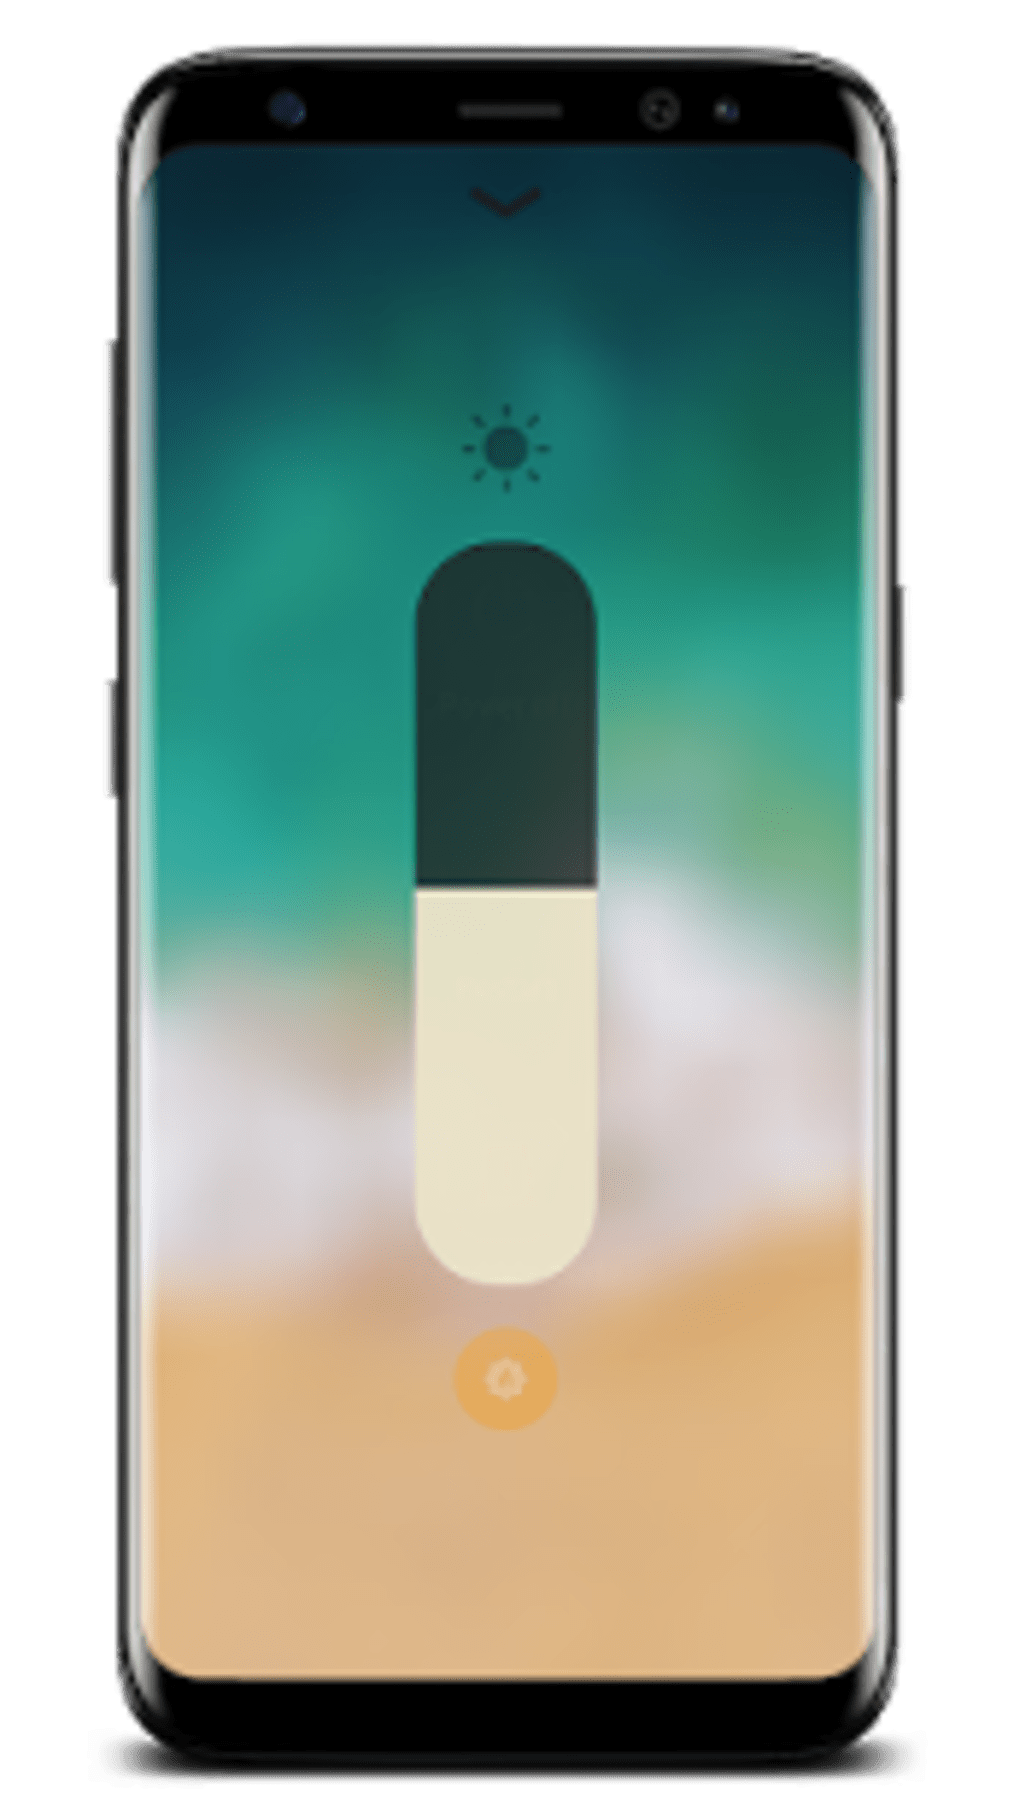 Control Center IOS 11 for Android - Download